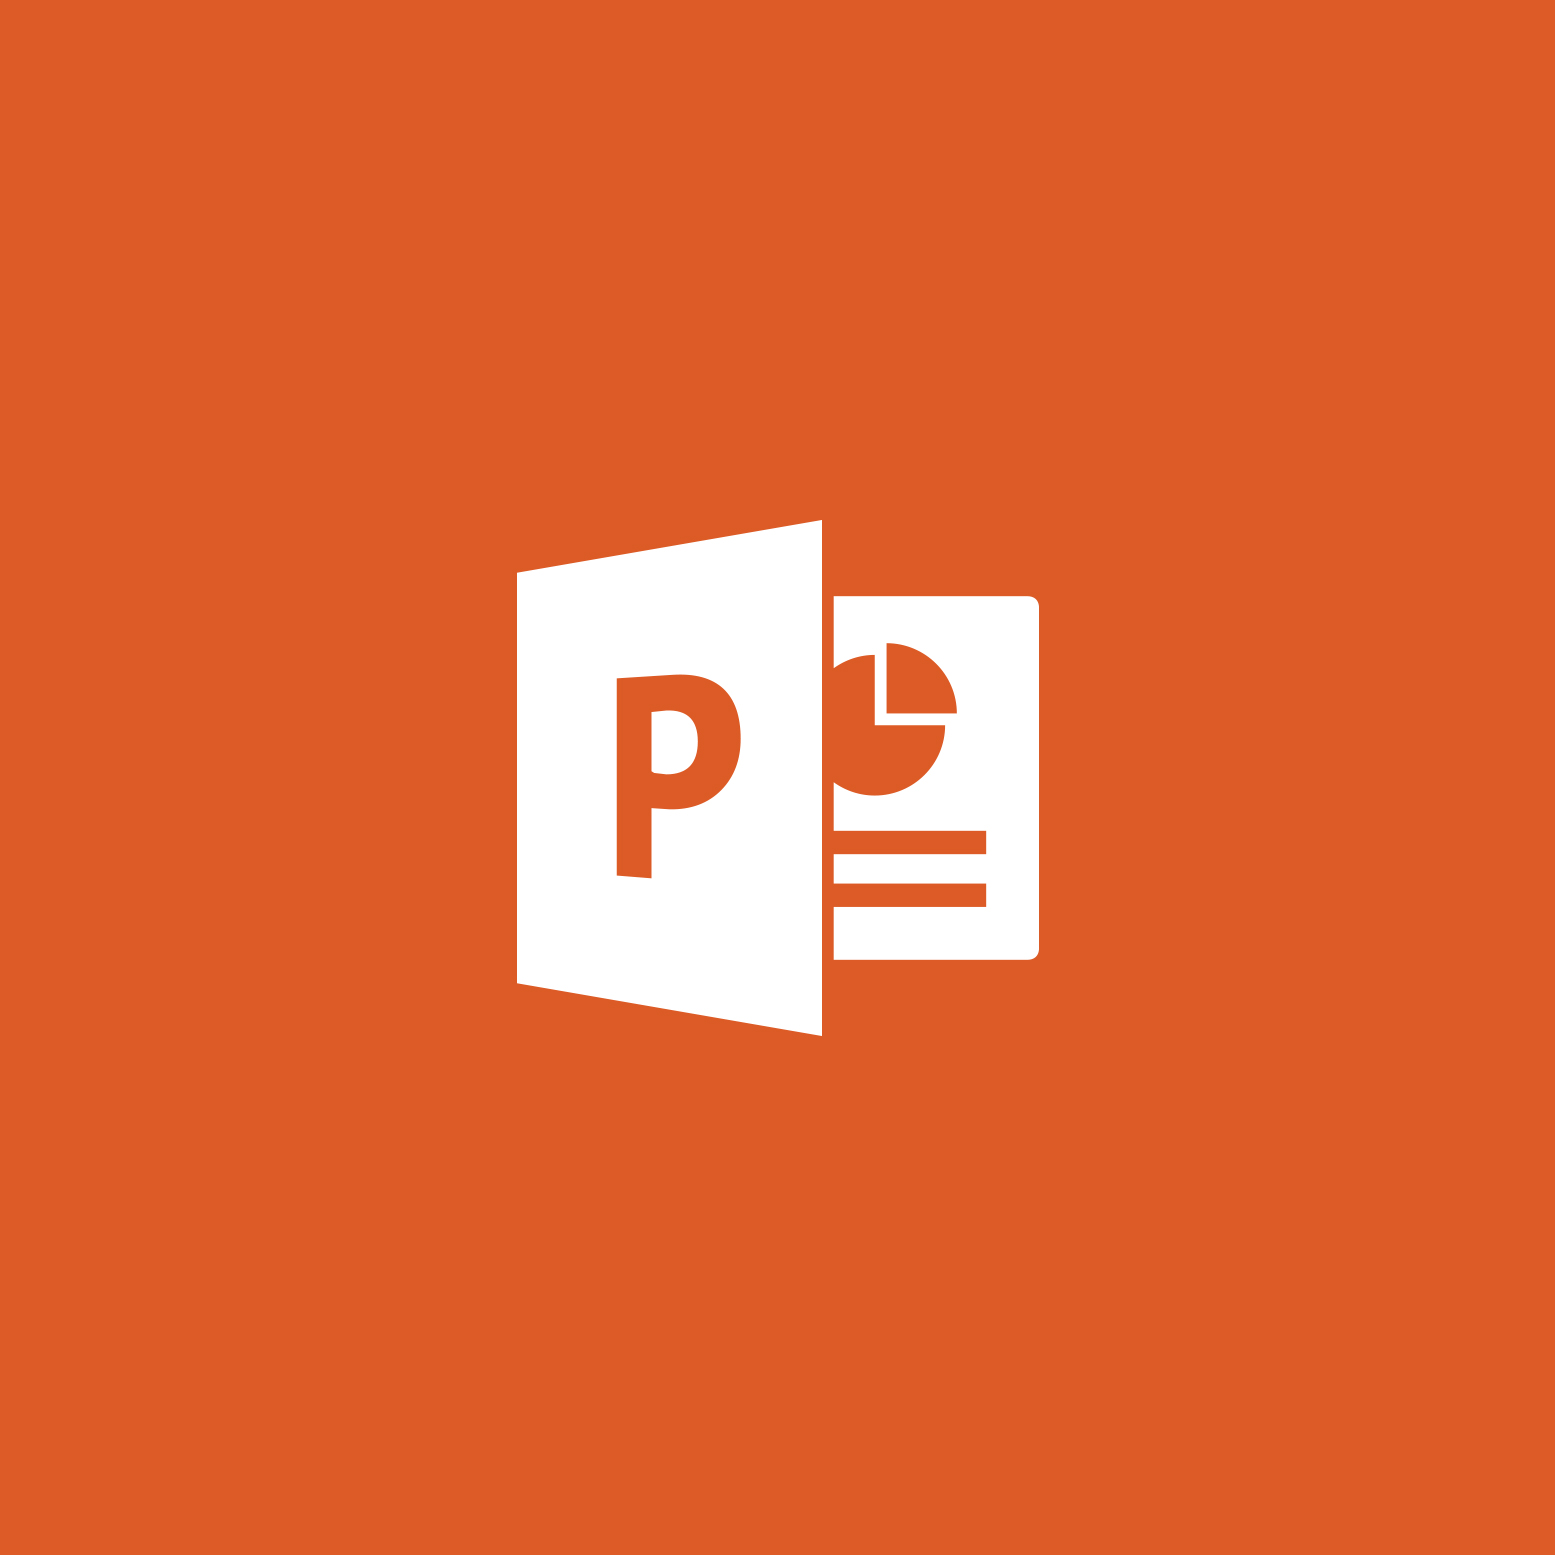 PowerPoint 2016 (Non-Commercial)